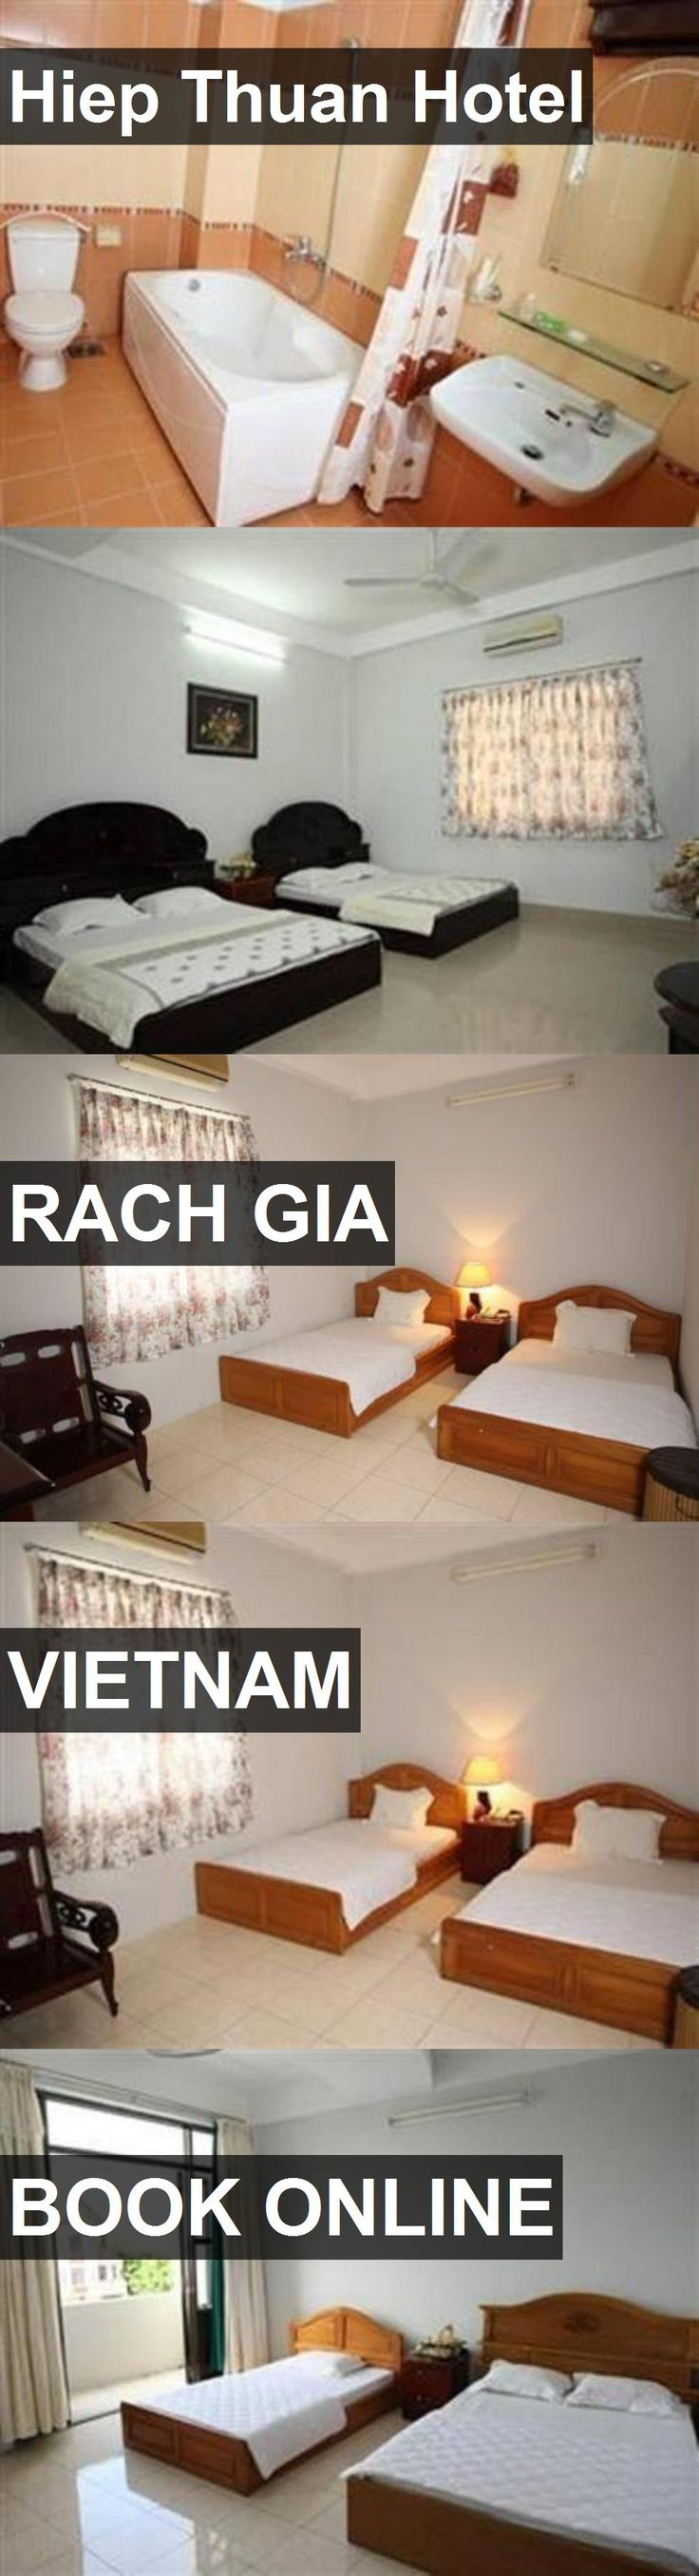 Hiep Thuan Hotel in Rach Gia, Vietnam. For more information, photos, reviews and best prices please follow the link. #Vietnam #RachGia #travel #vacation #hotel